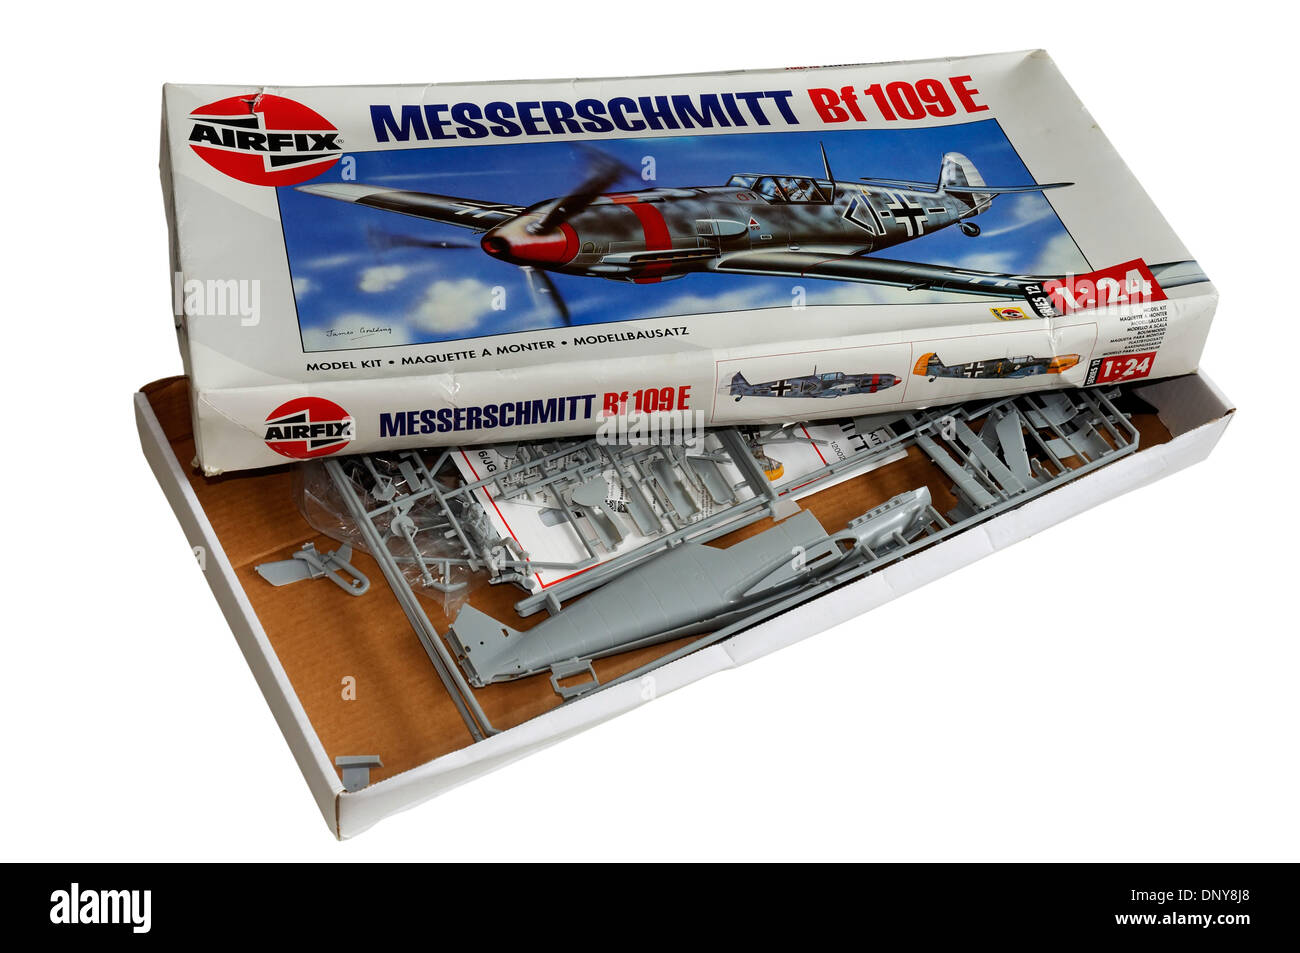 The classic 1/24th scale airfix Messerschmitt Me-109 plastic scale model kit - Stock Image